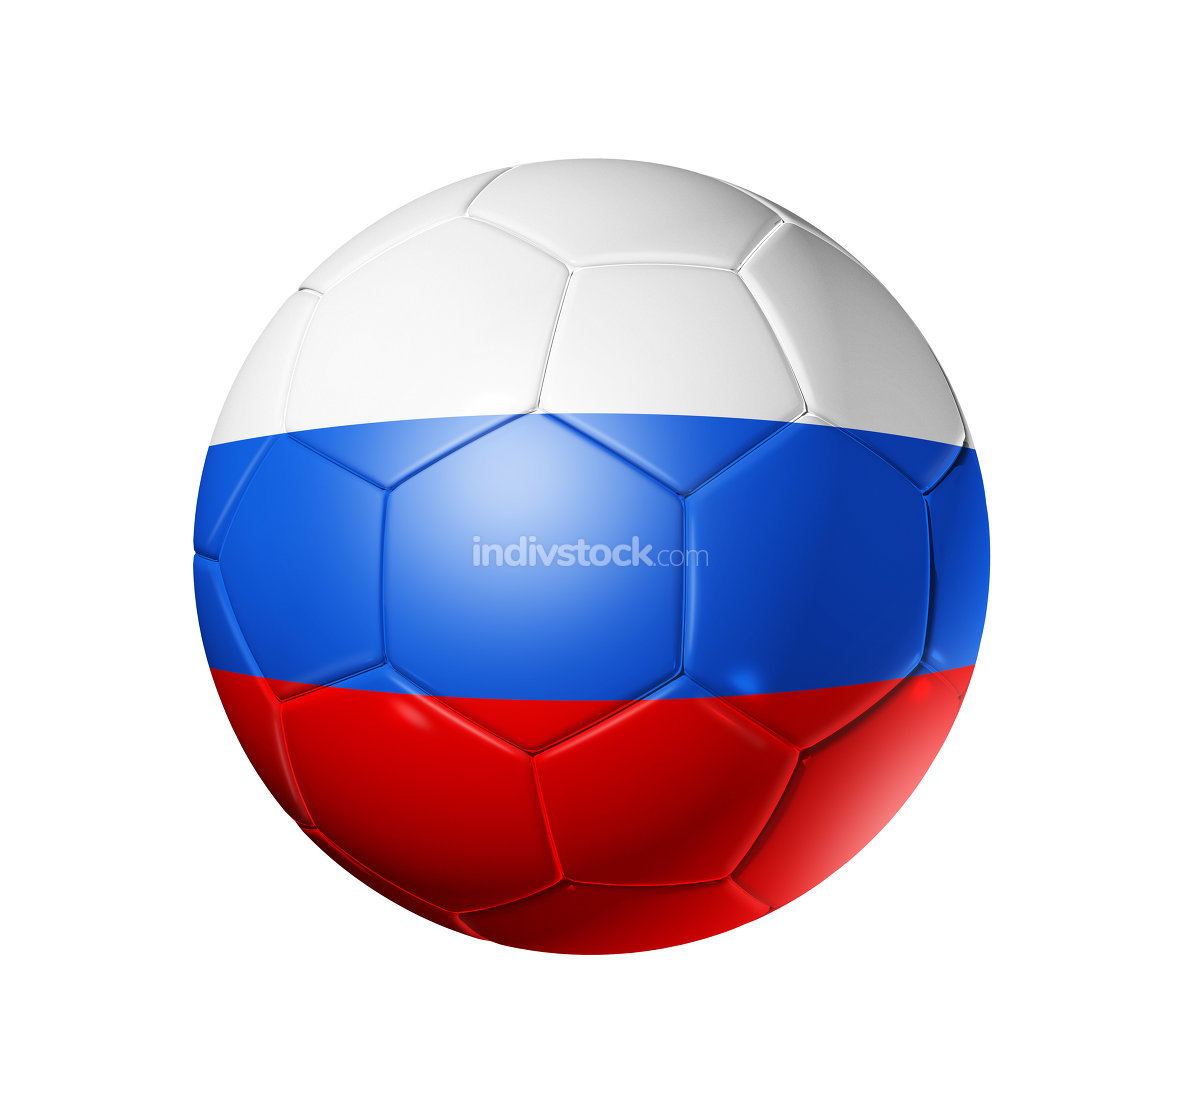 Soccer football ball with Russia flag